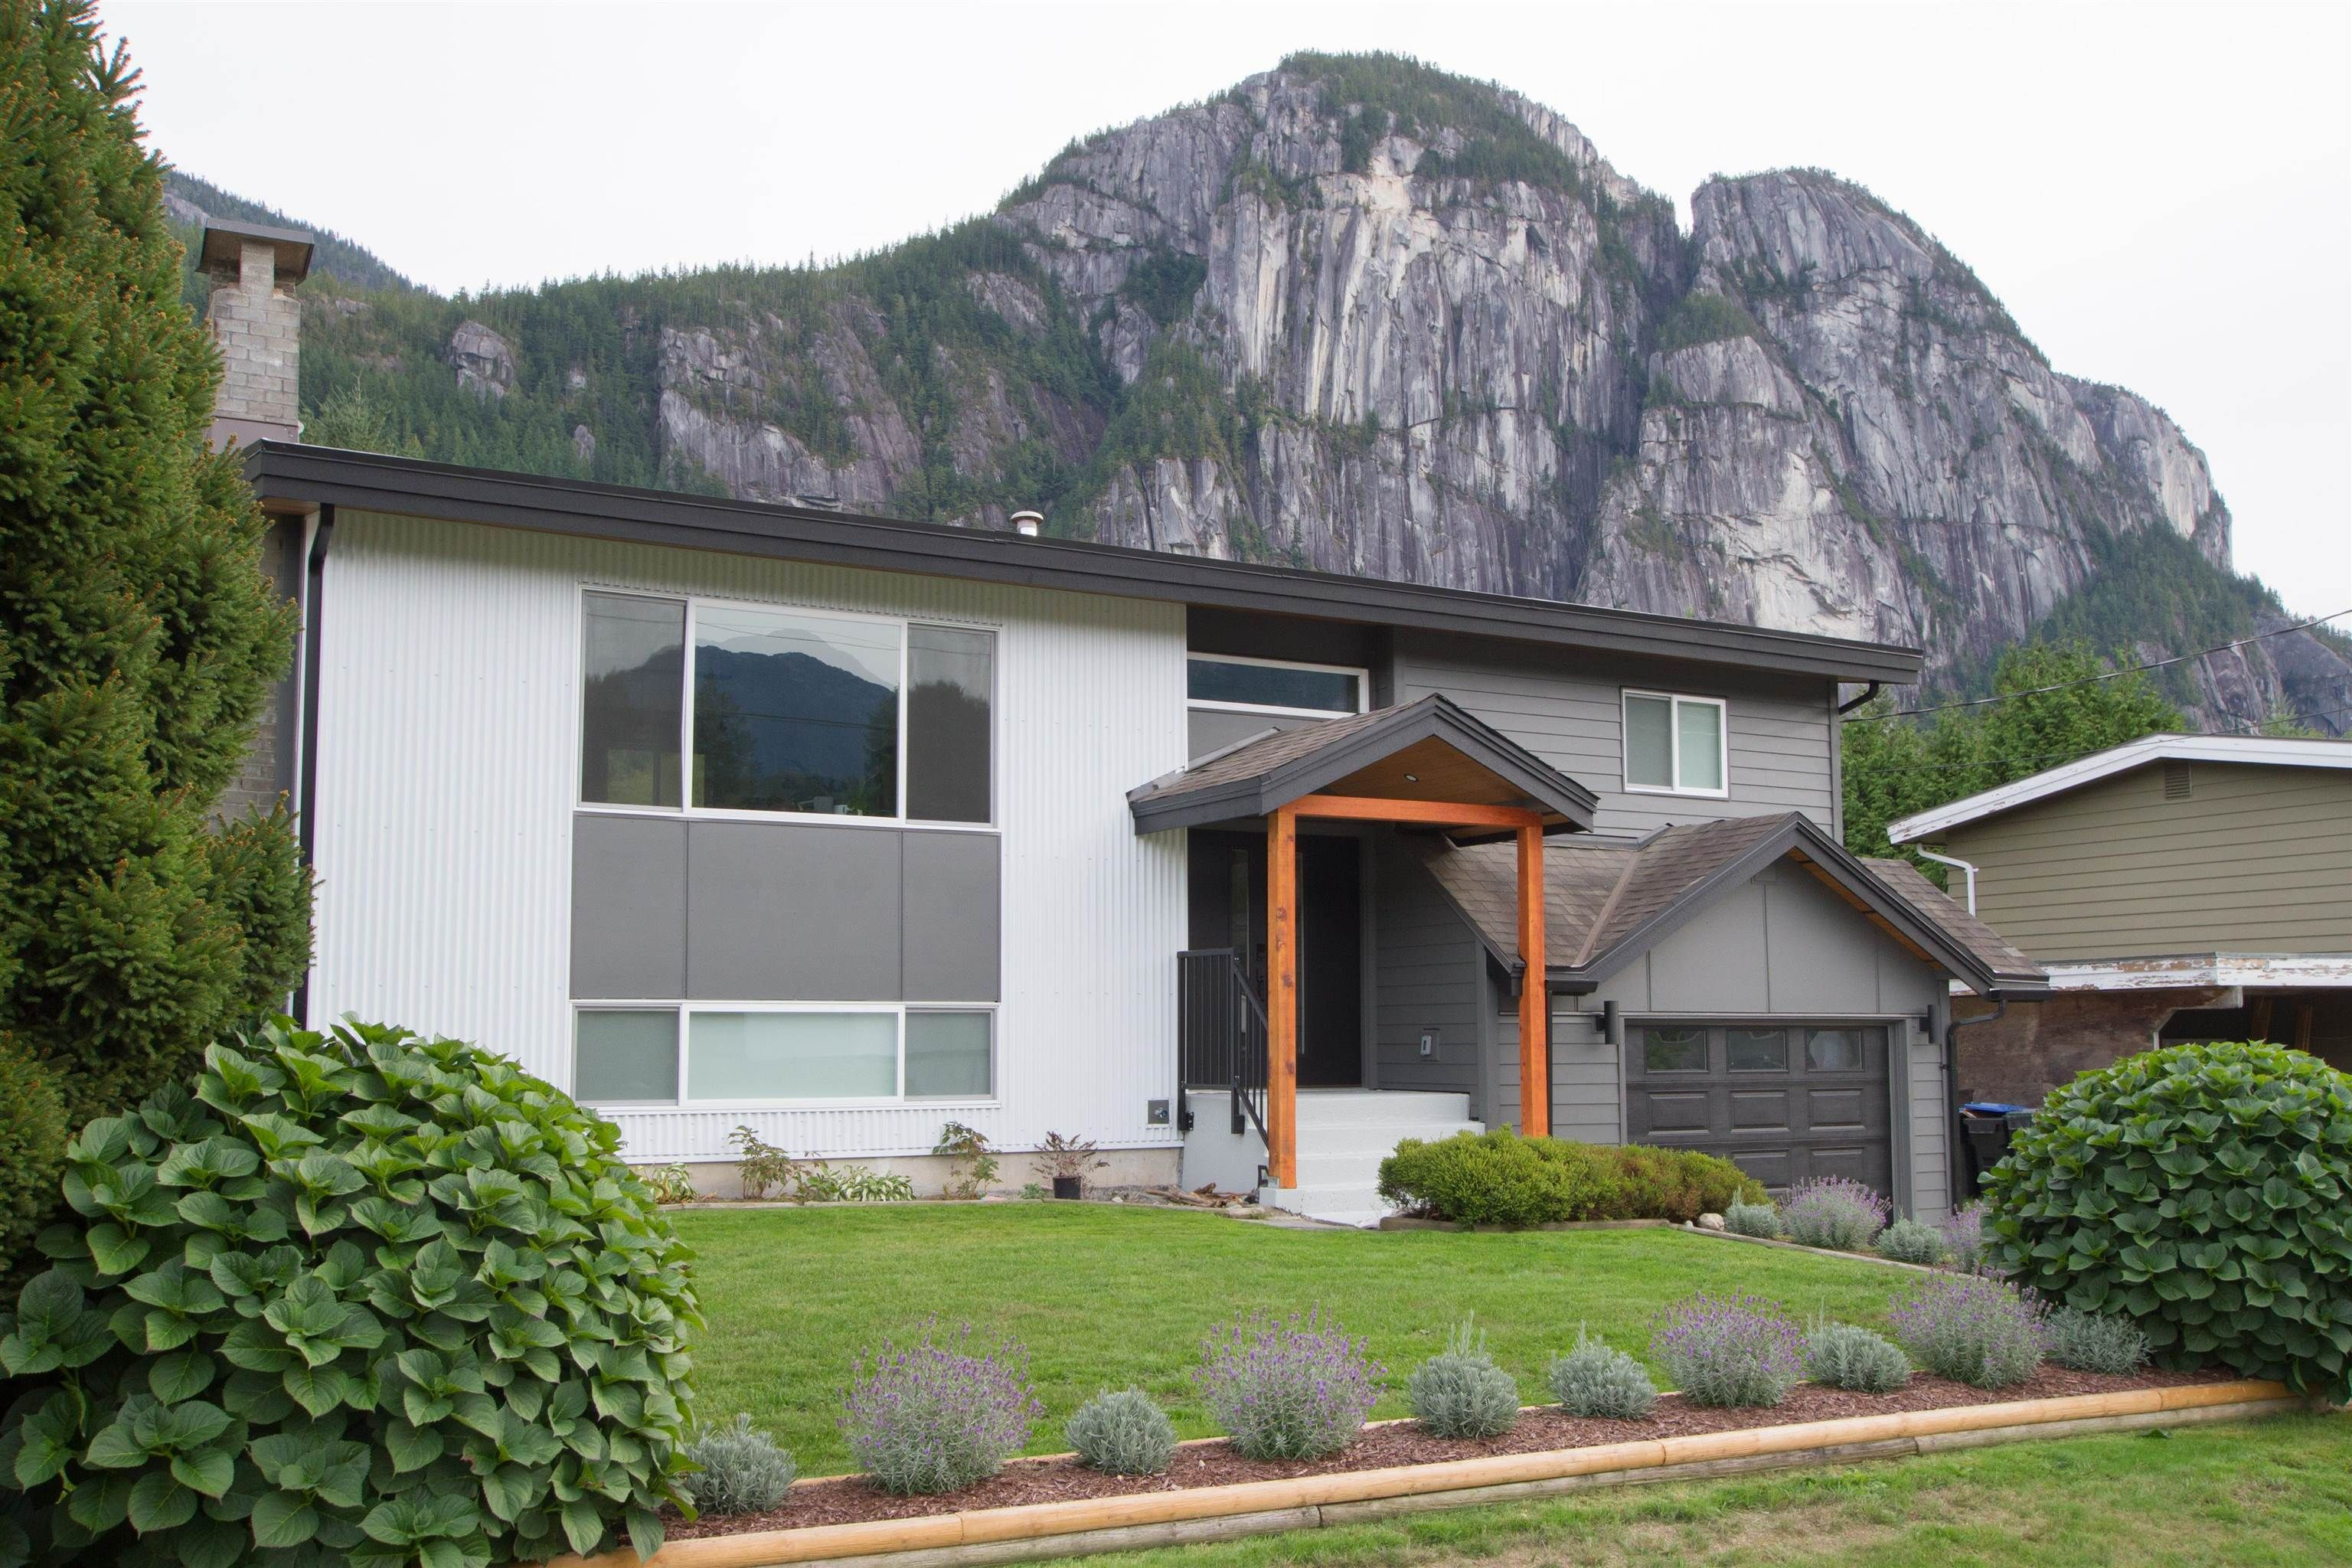 Main Photo: 38148 HEMLOCK Avenue in Squamish: Valleycliffe House for sale : MLS®# R2619810